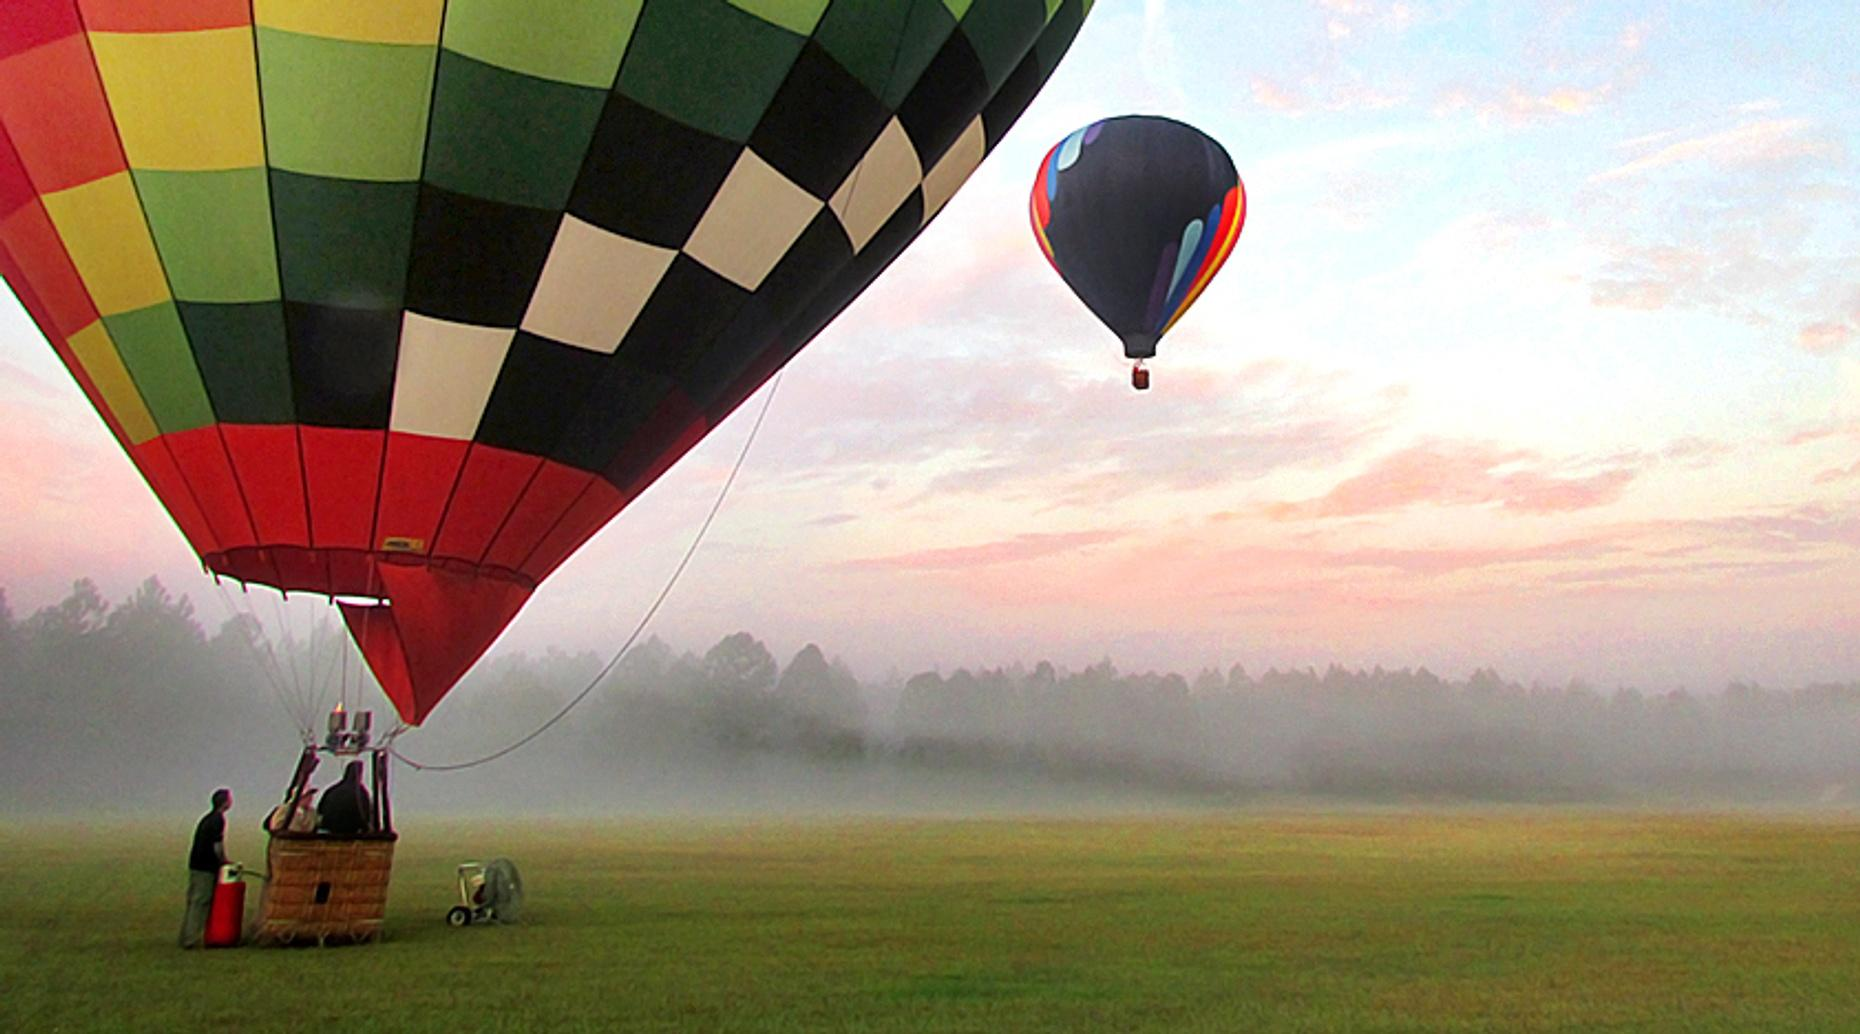 Central Florida Hot Air Balloon Private Flight